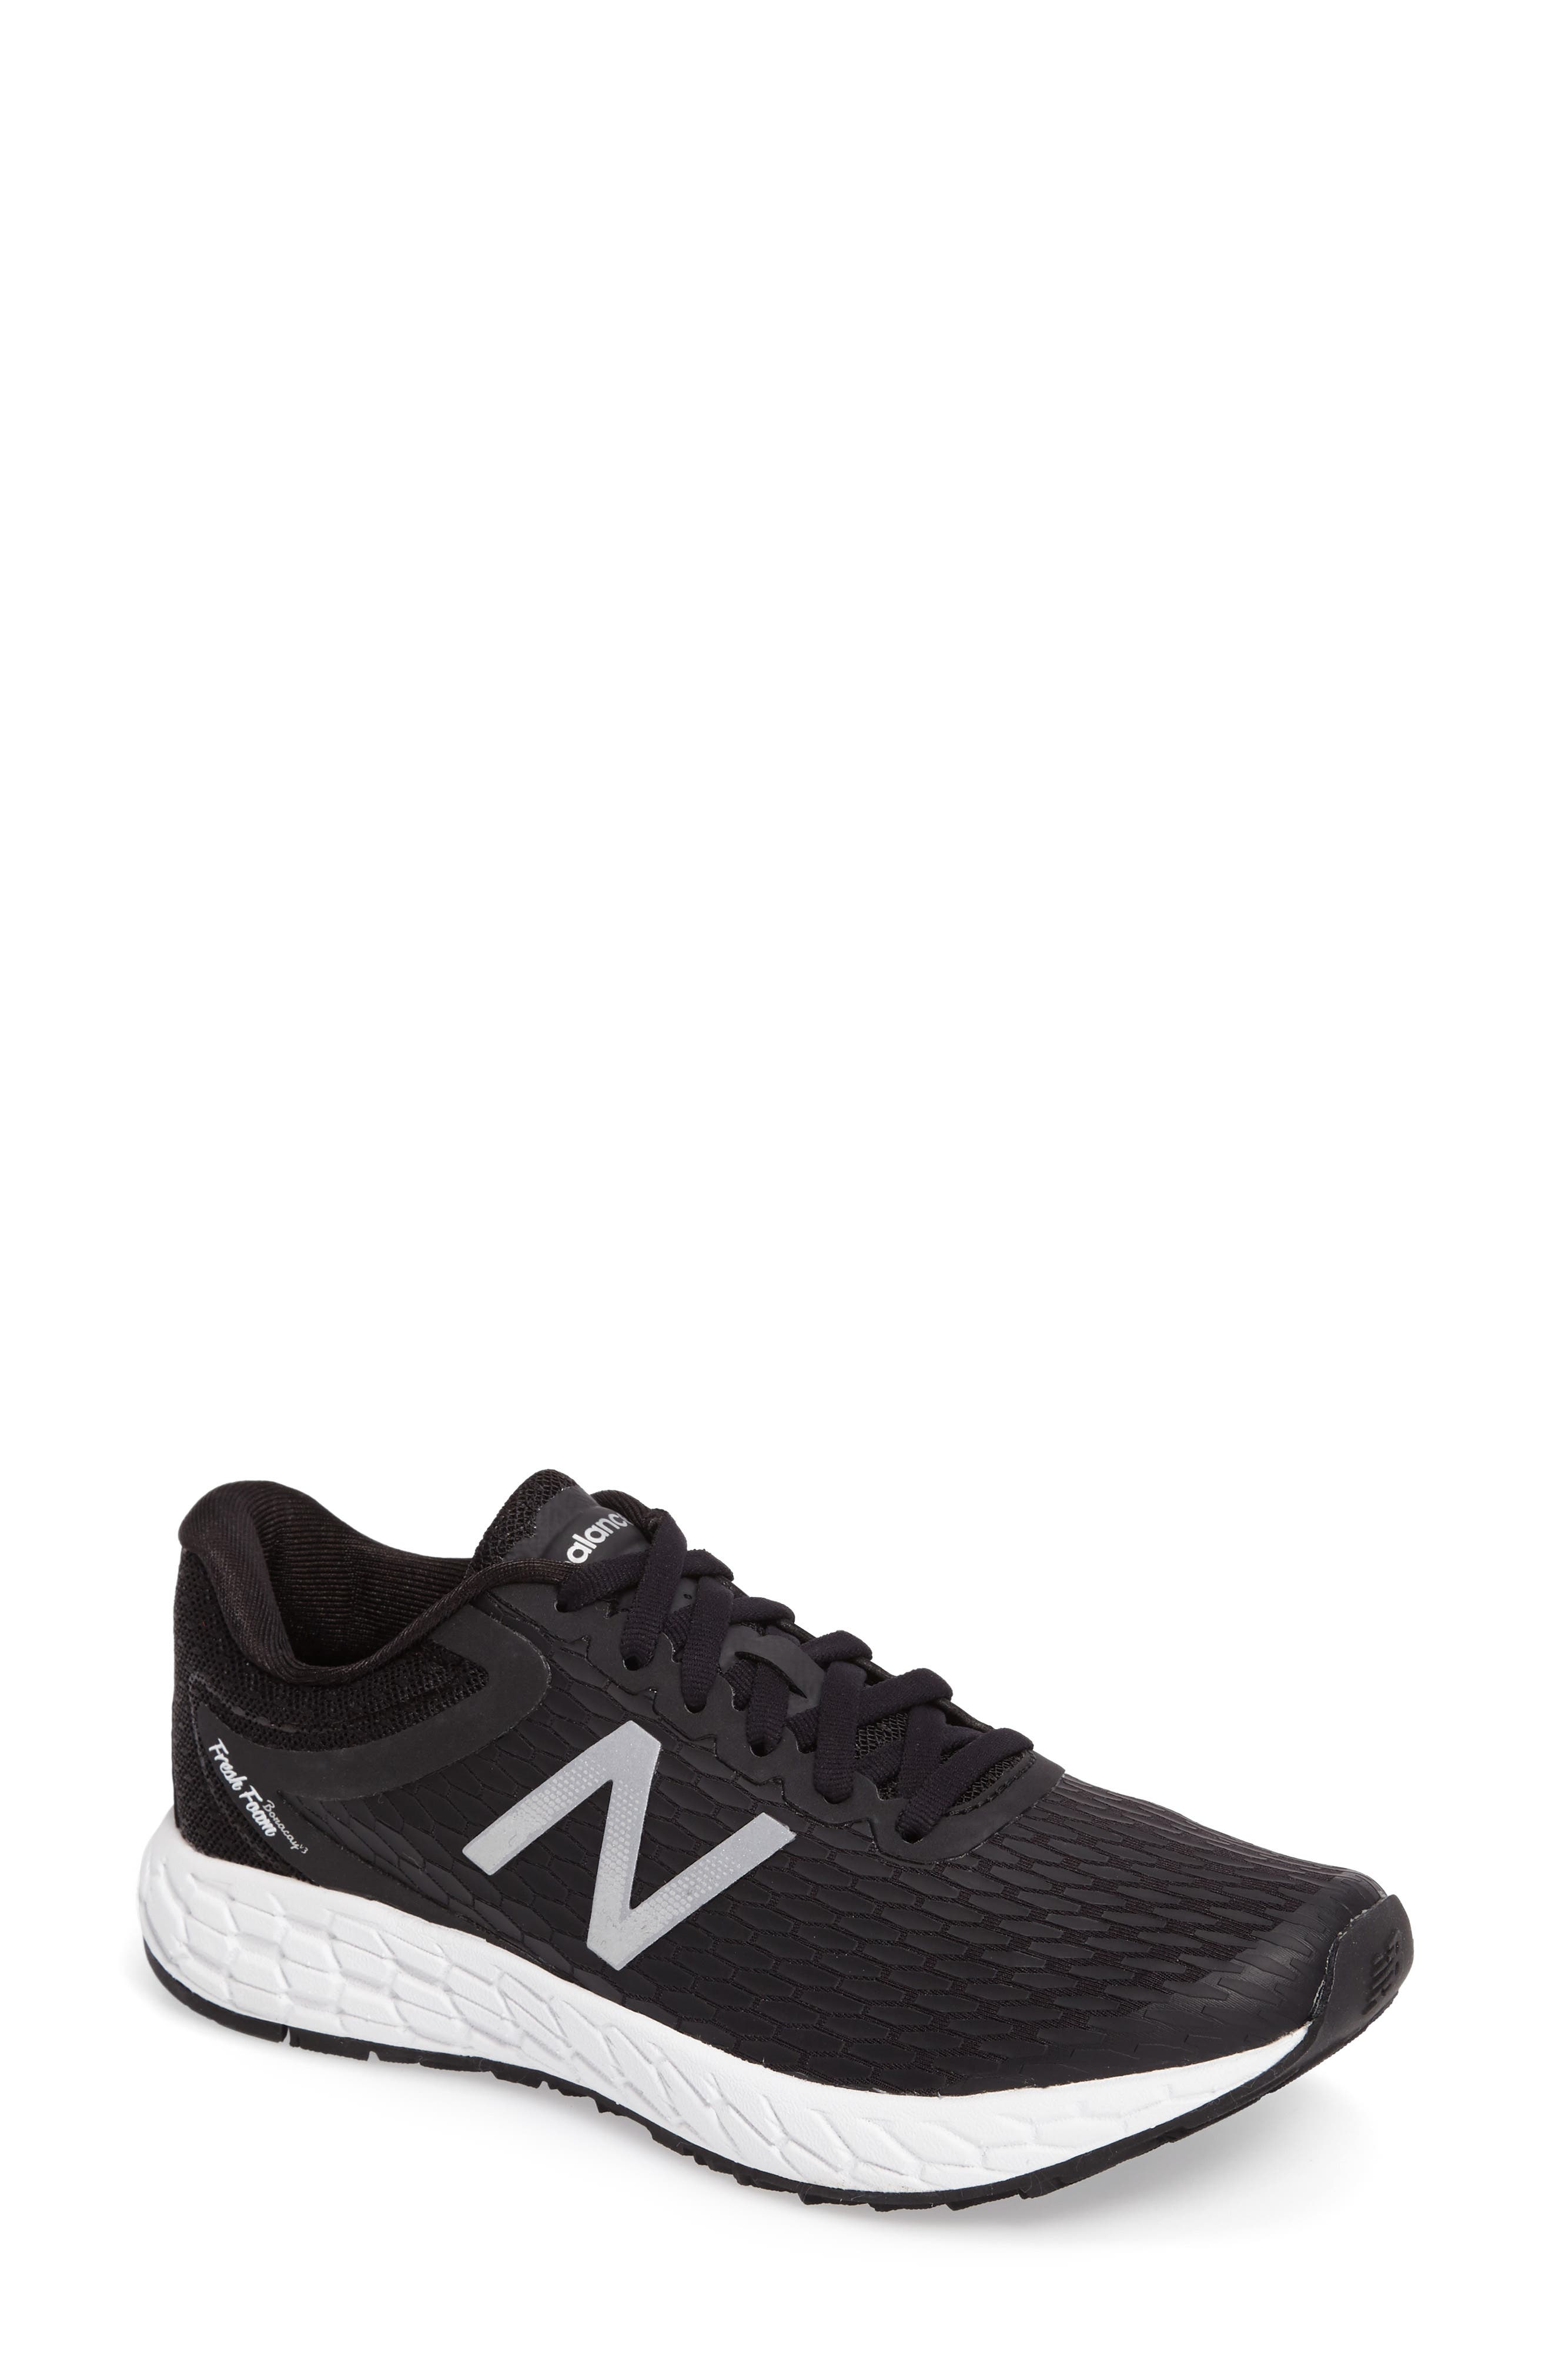 Main Image - New Balance '980 - Fresh Foam Boracay' Running Shoe (Women)